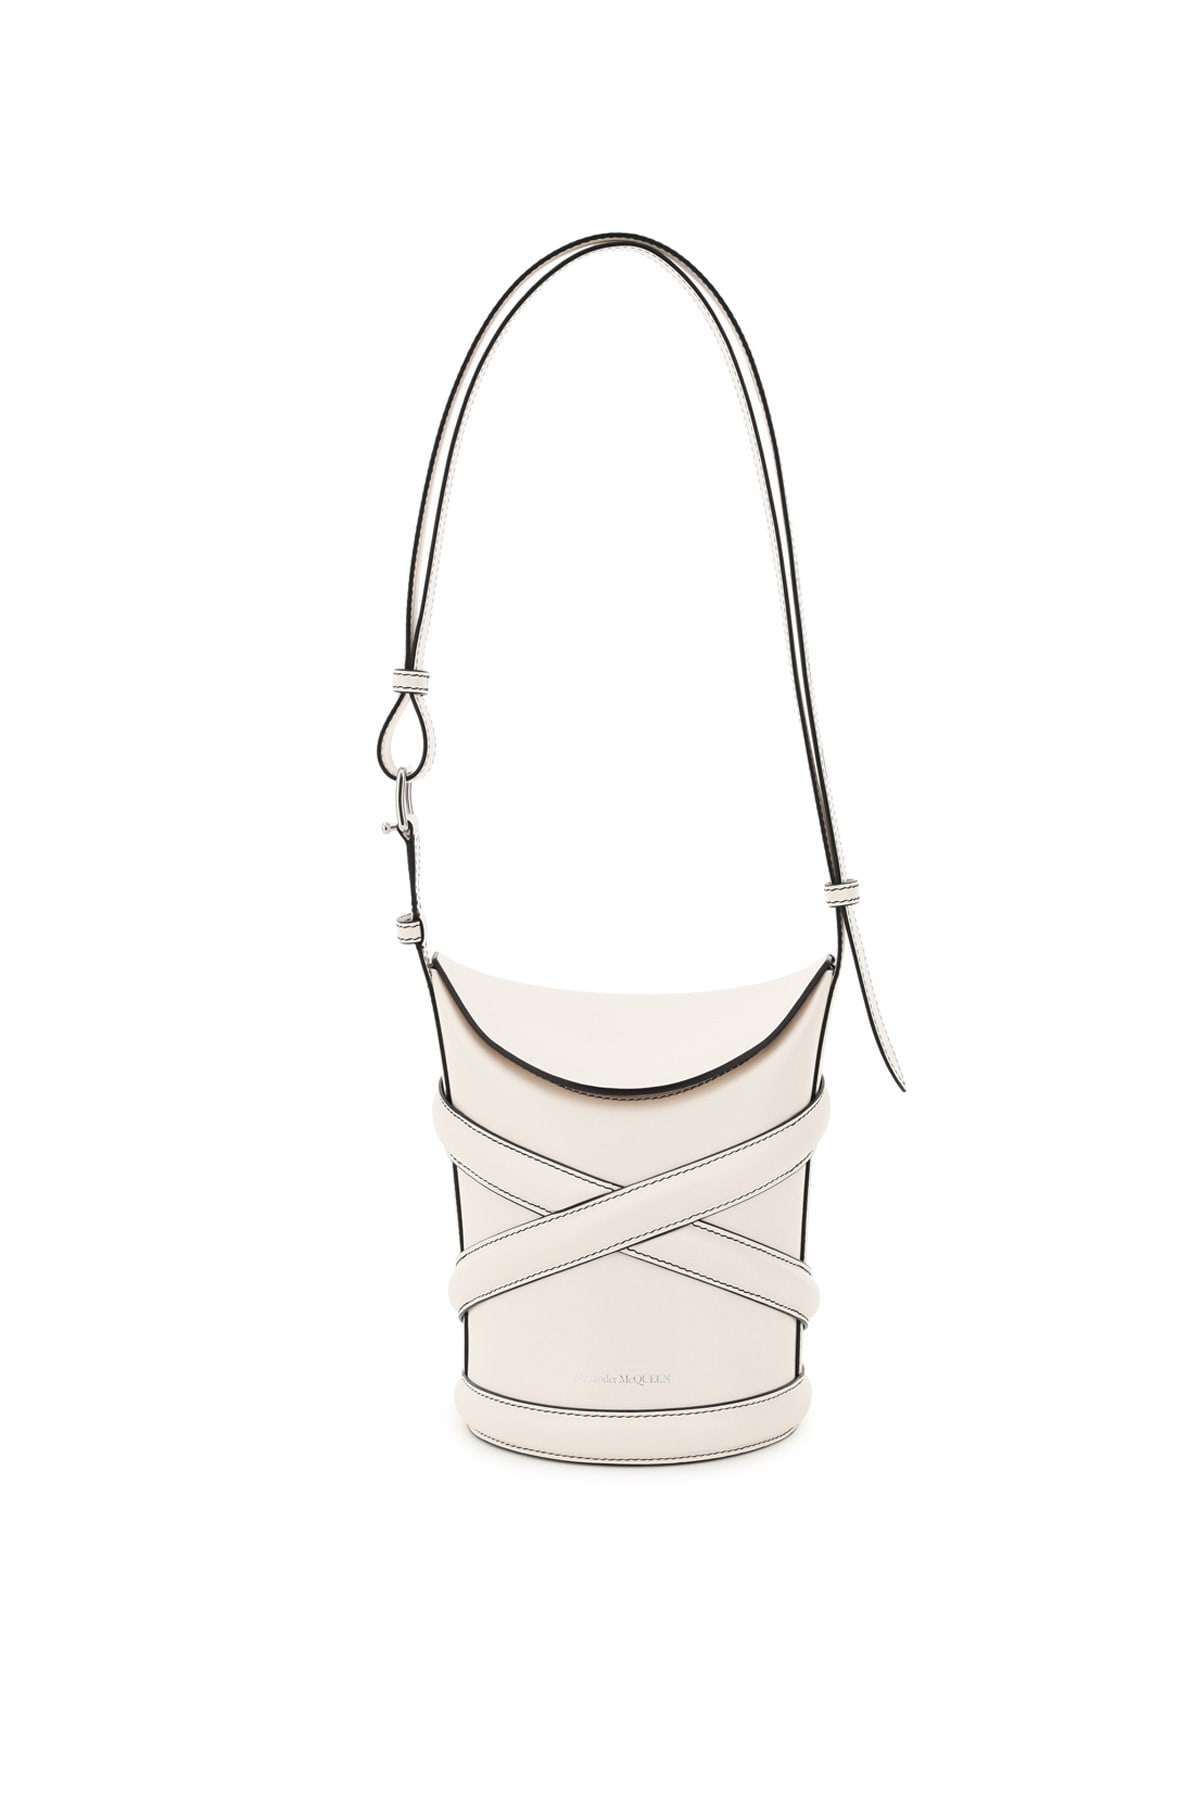 Alexander Mcqueen Leathers THE SMALL CURVE BUCKET BAG